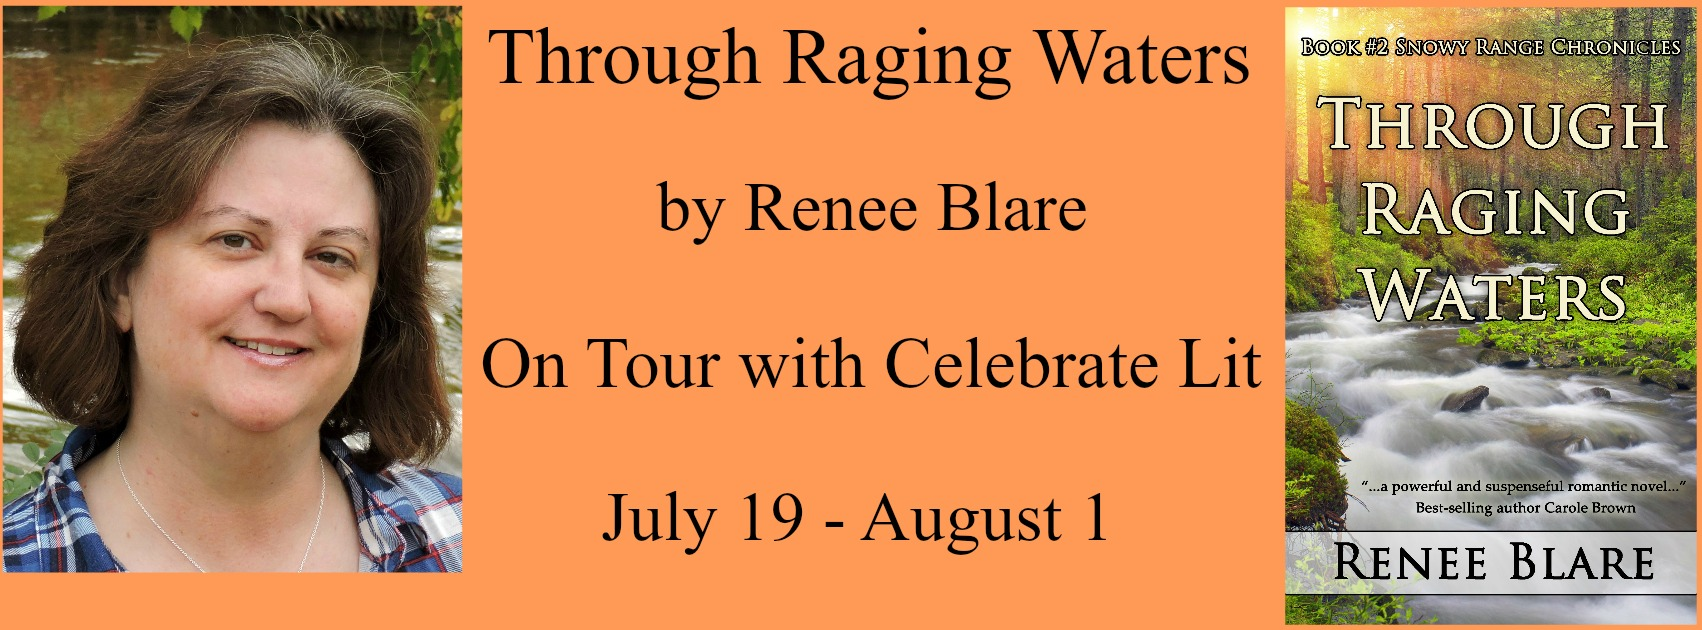 Through Raging Waters Banner